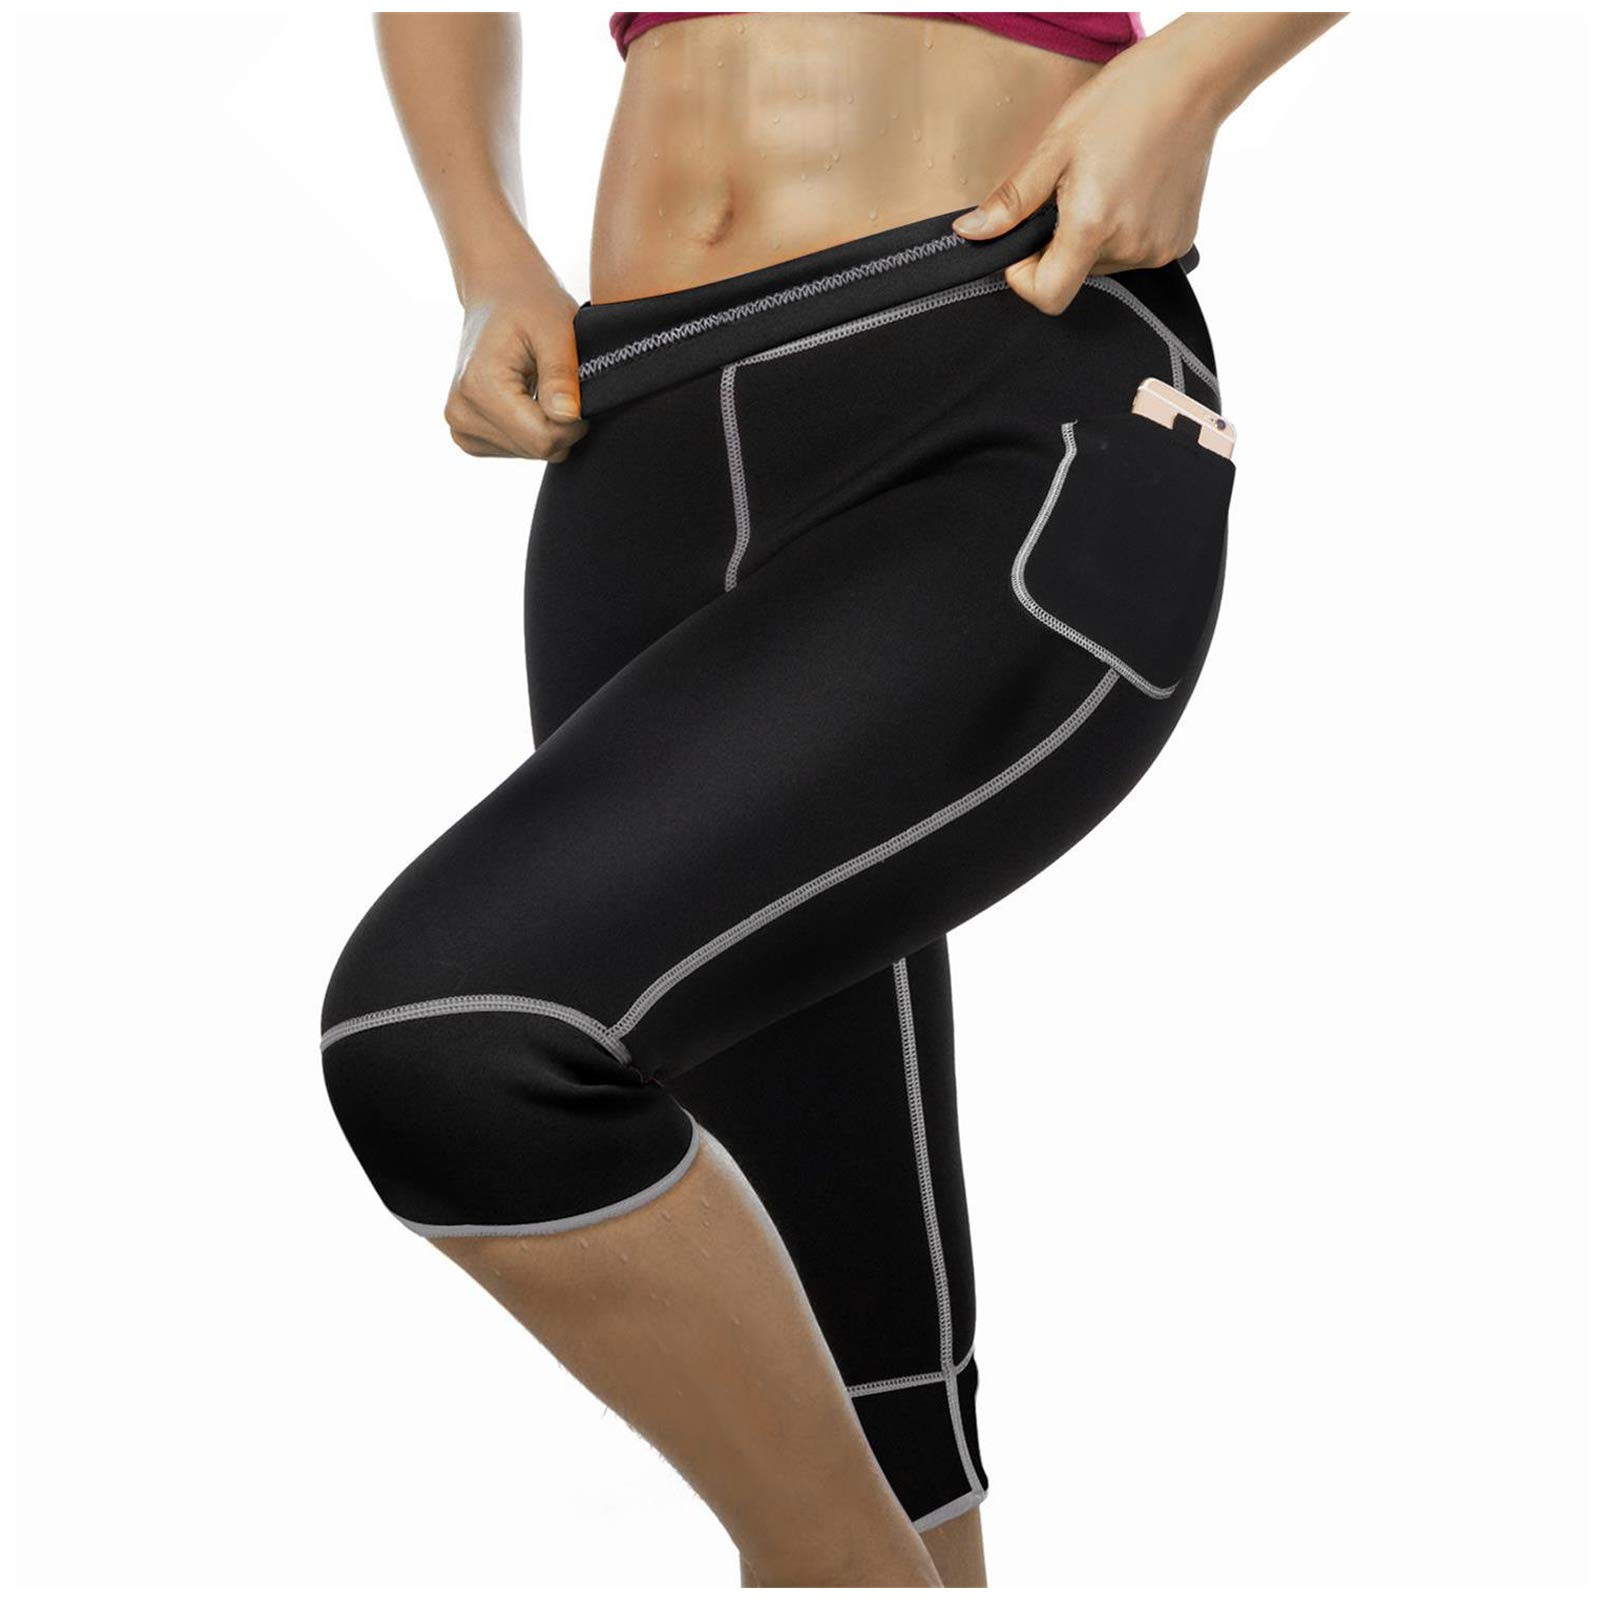 Womens Weight Loss Hot Neoprene Sauna Sweat Pants with Side Pocket Workout Thighs Slimming Capris Leggings Body Shaper (Black, M)